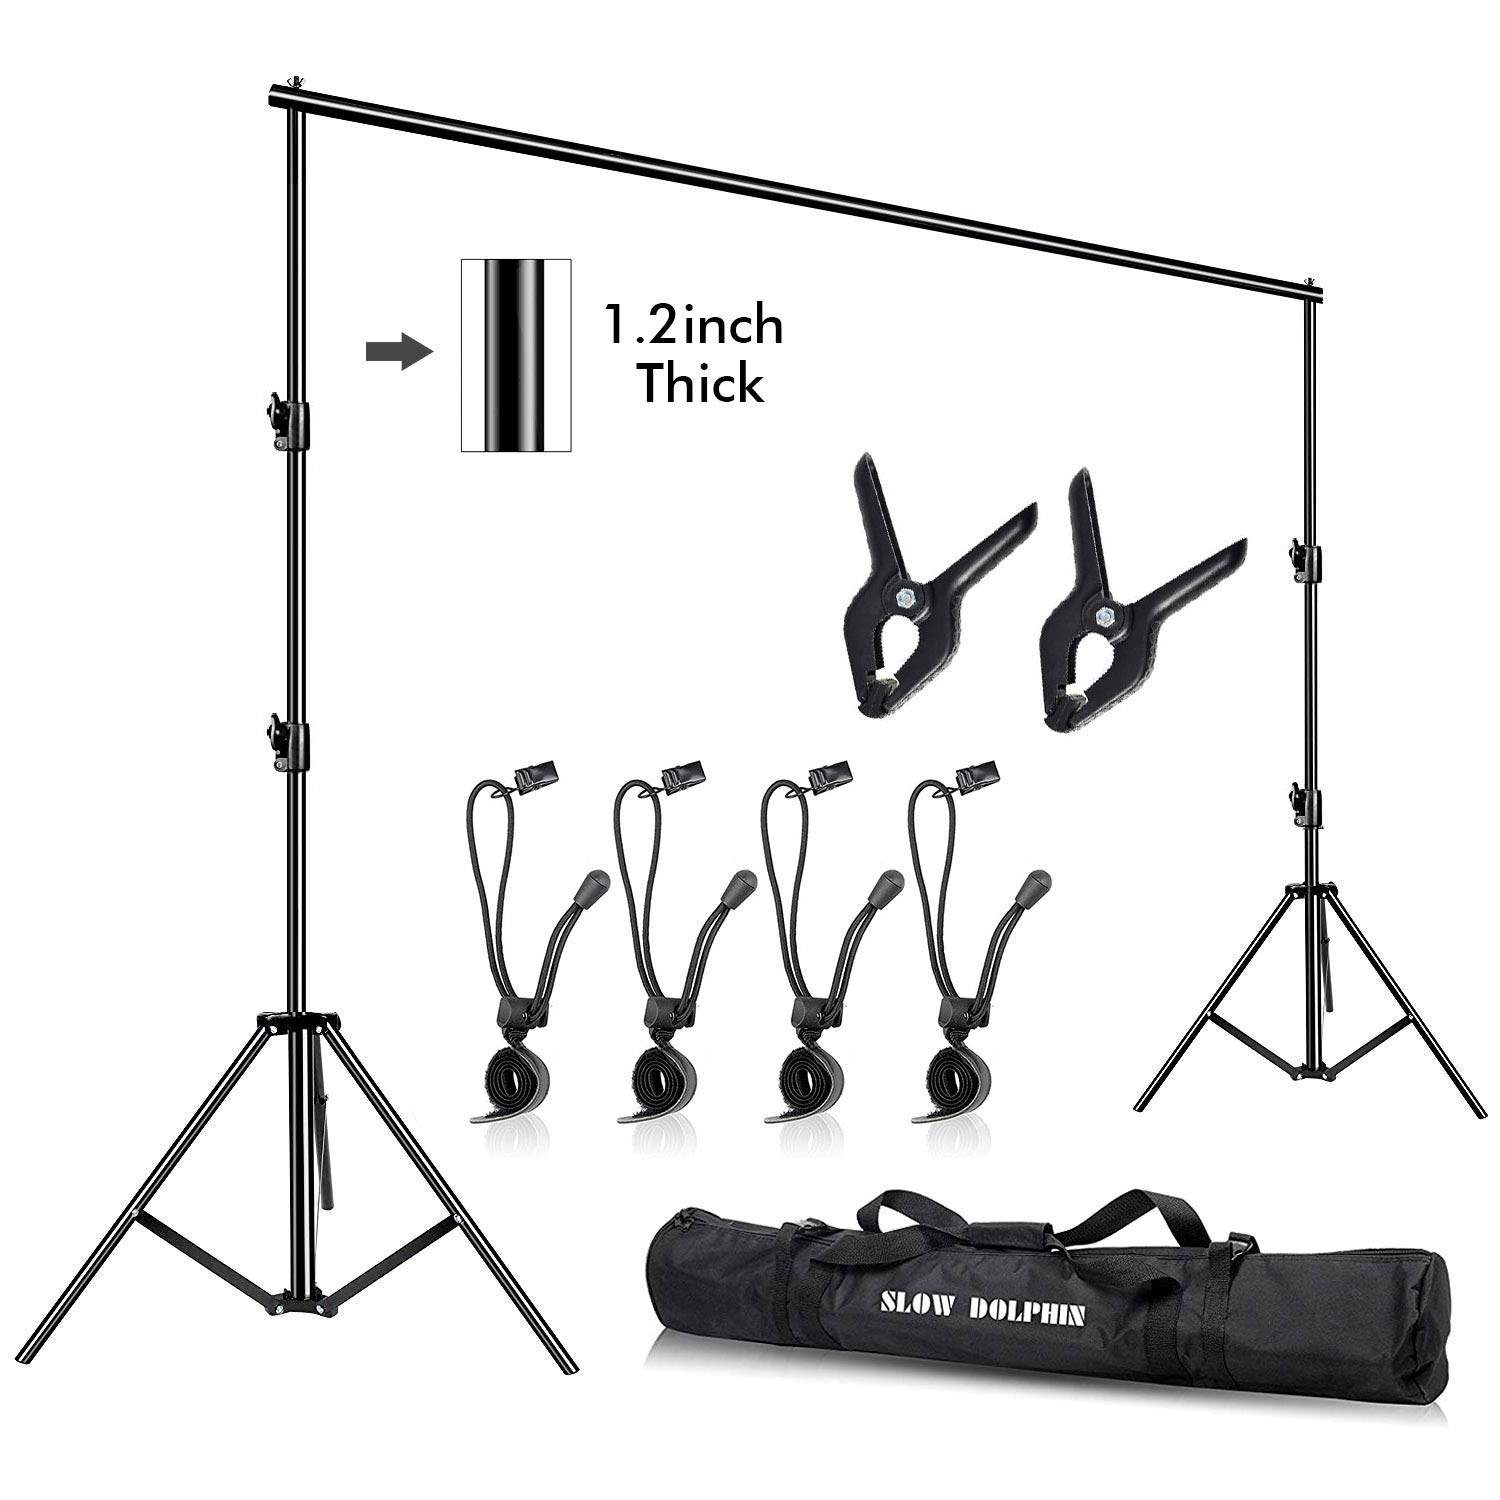 Slow Dolphin Photo Video Studio10ft (W) x 9.2ft (H) Heavy Duty Adjustable Photography Backdrop Stand BackgroundSupport System KitwithCarry Bag by SLOW DOLPHIN